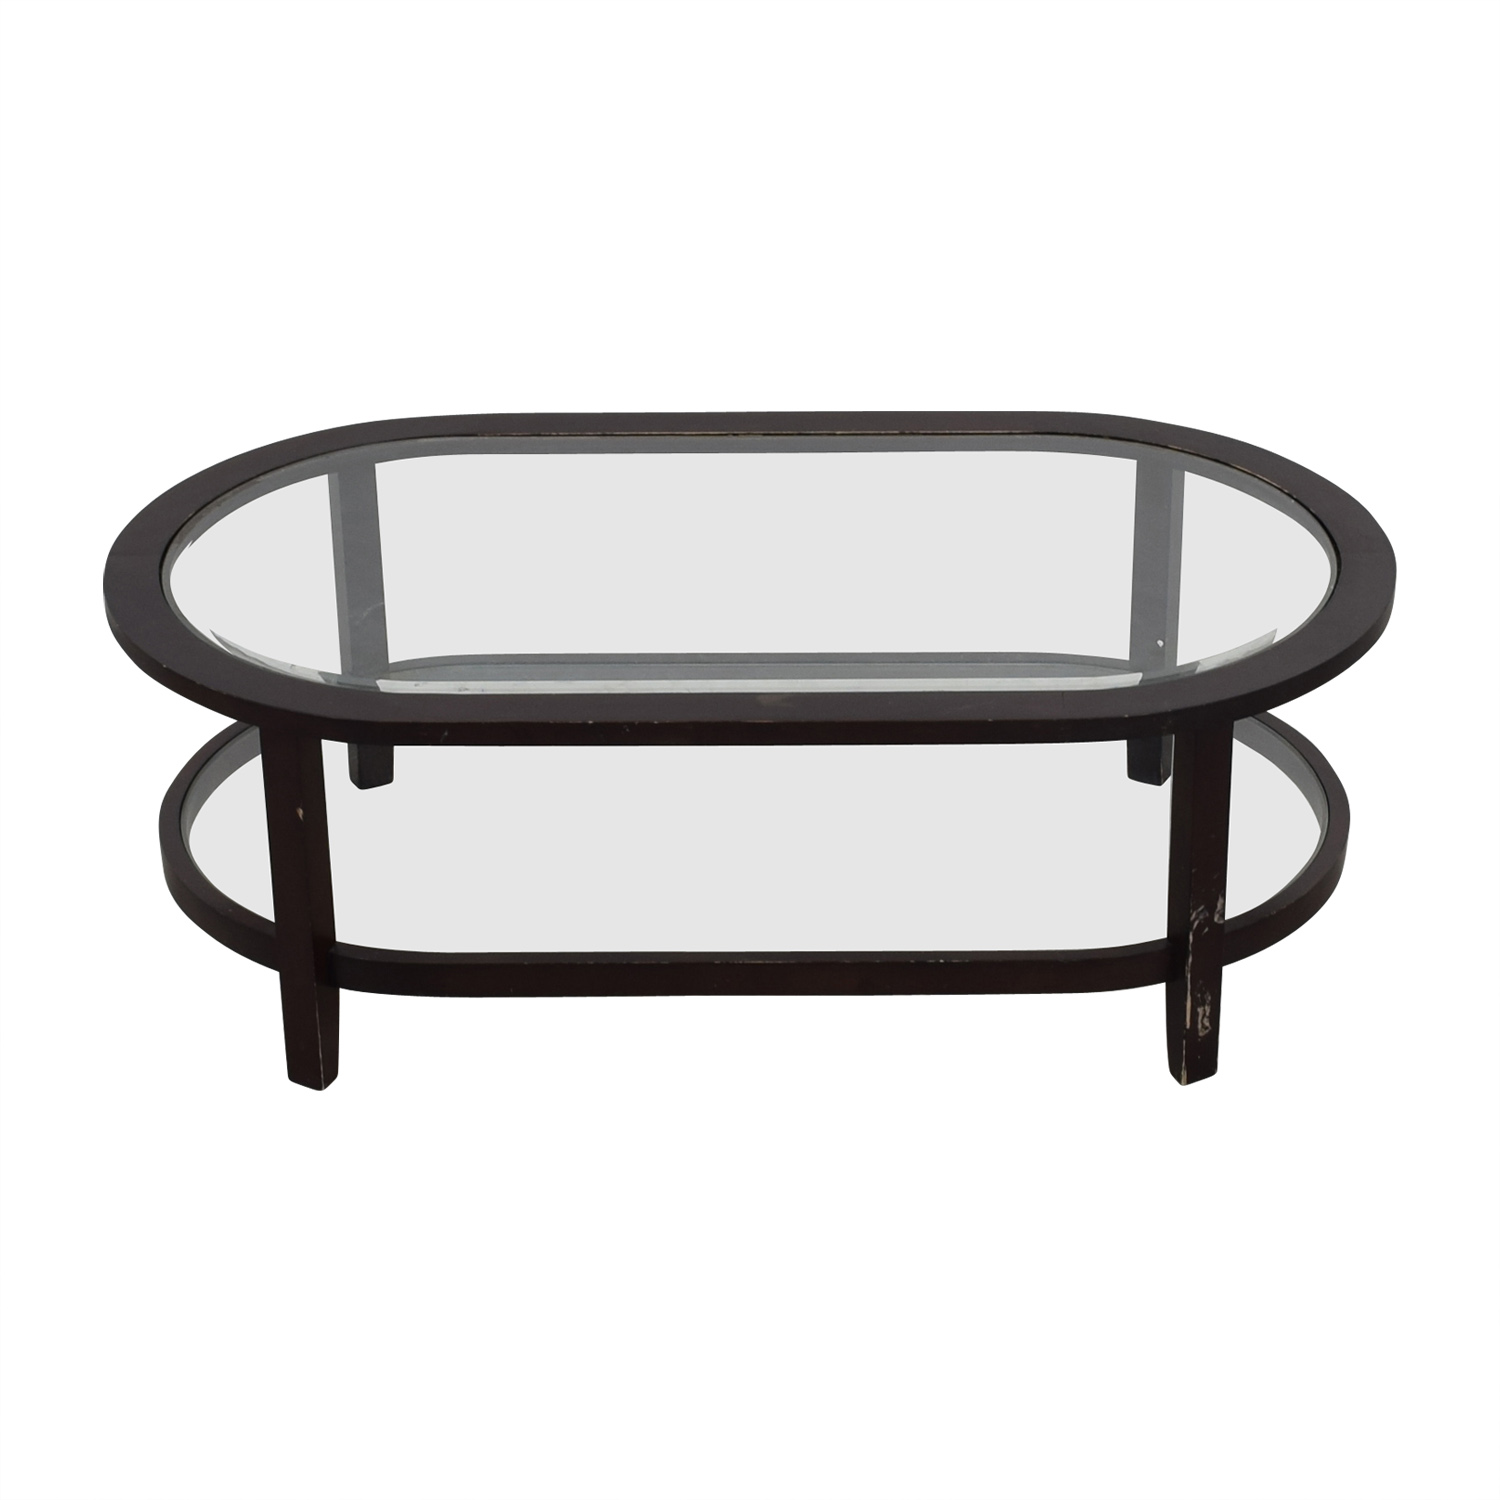 Crate & Barrel Crate & Barrel Oval Glass Coffee Table nj